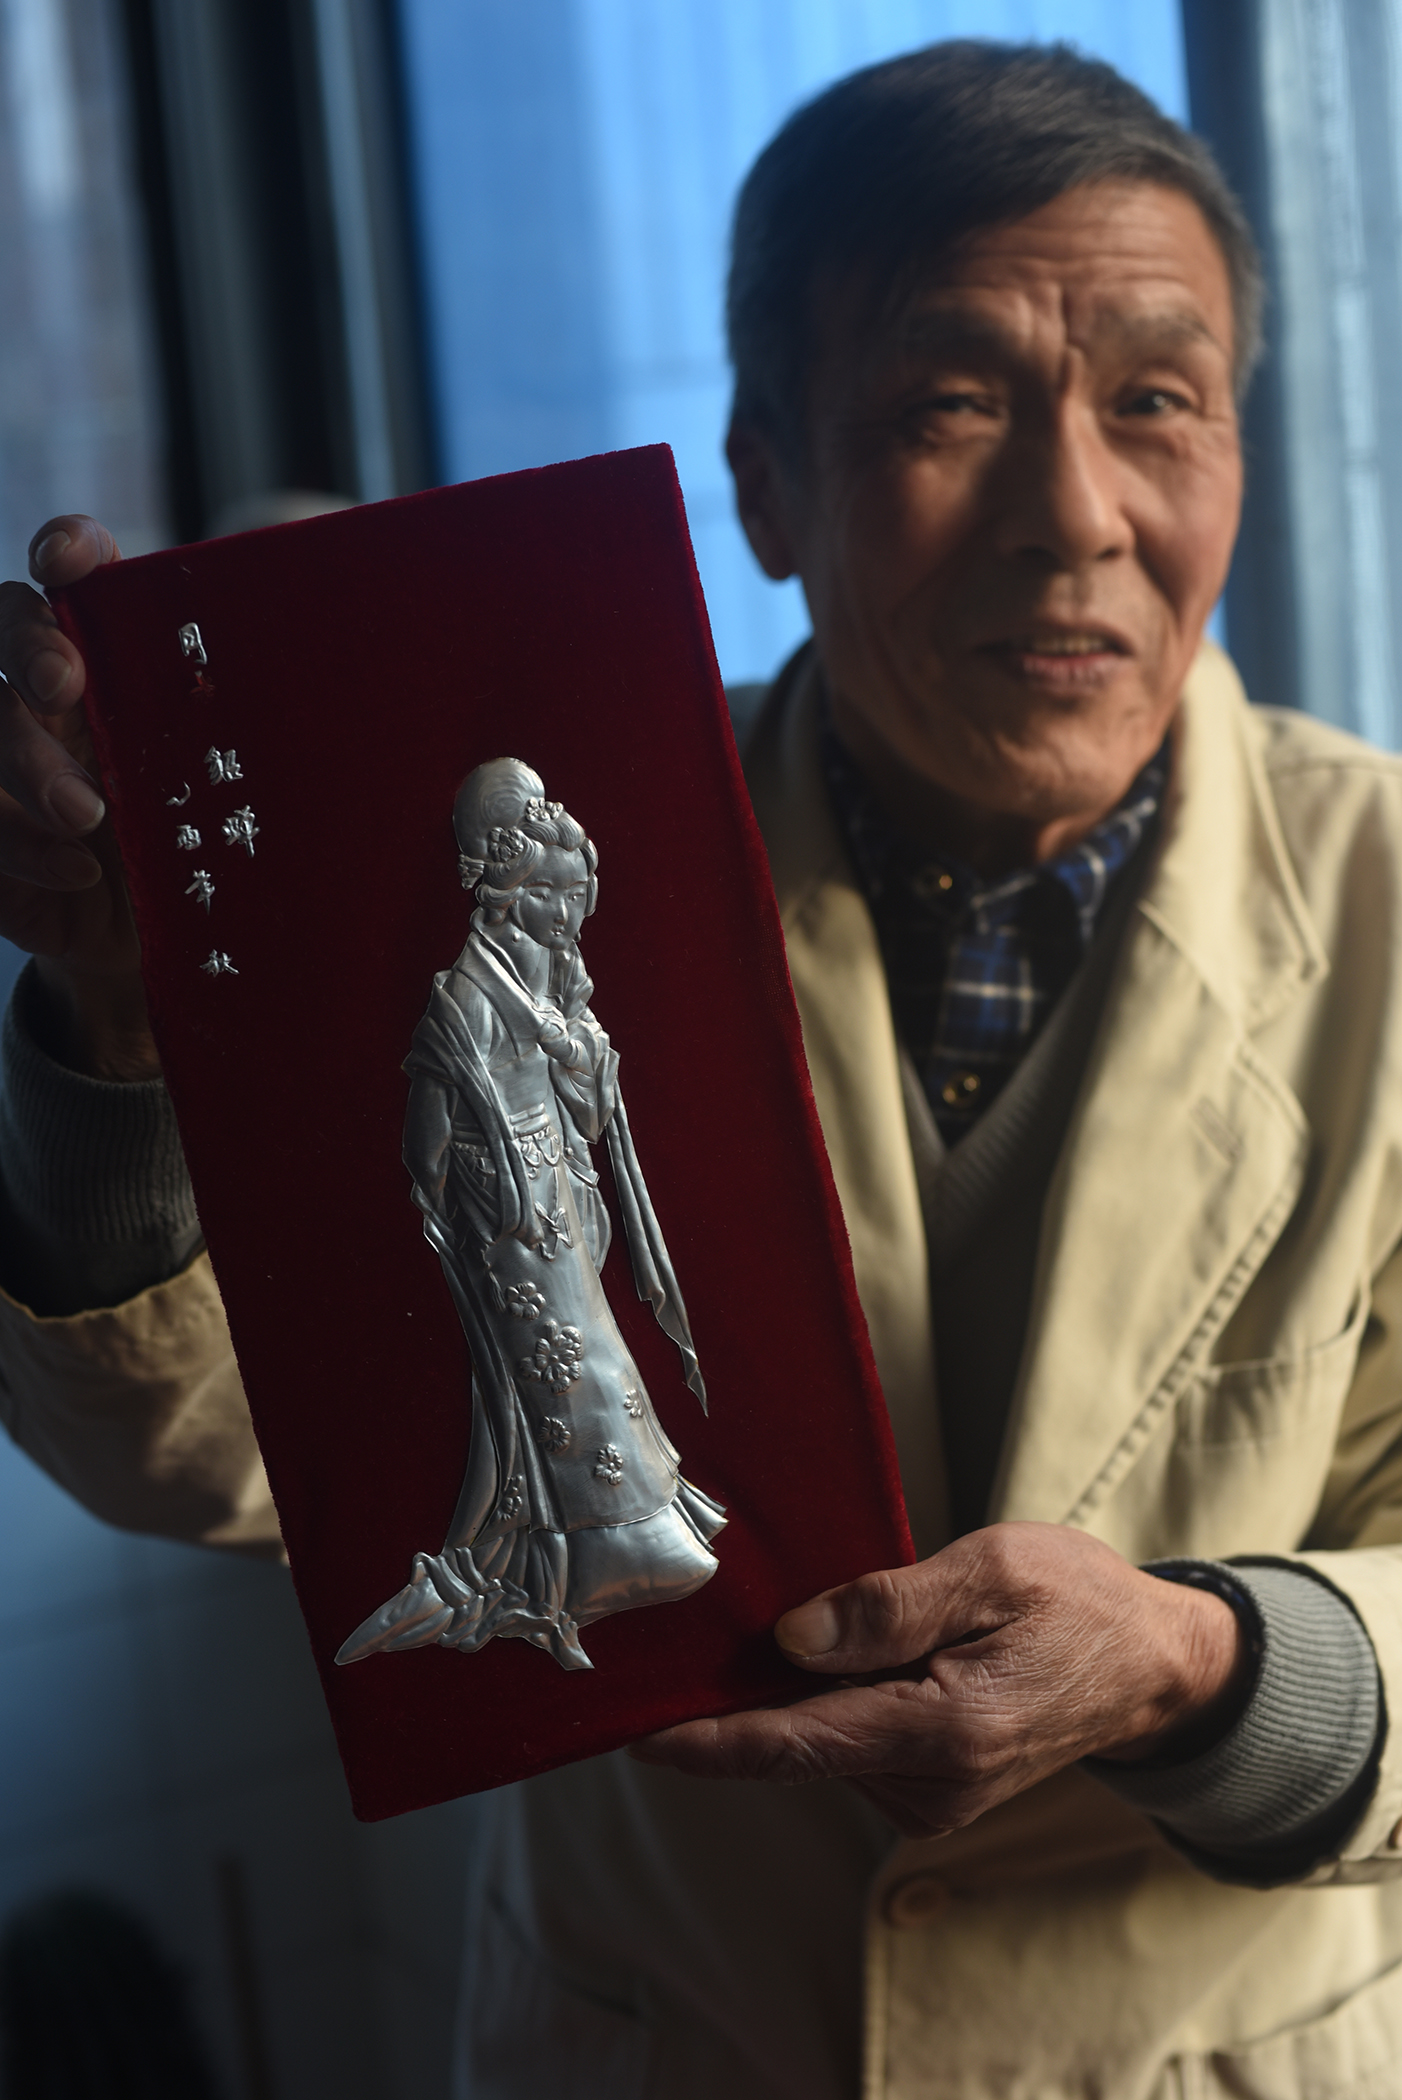 Wang Hualin, Inheritor of Intangible Culture Heritage, metalwork and egg sculpture, Jingzhou